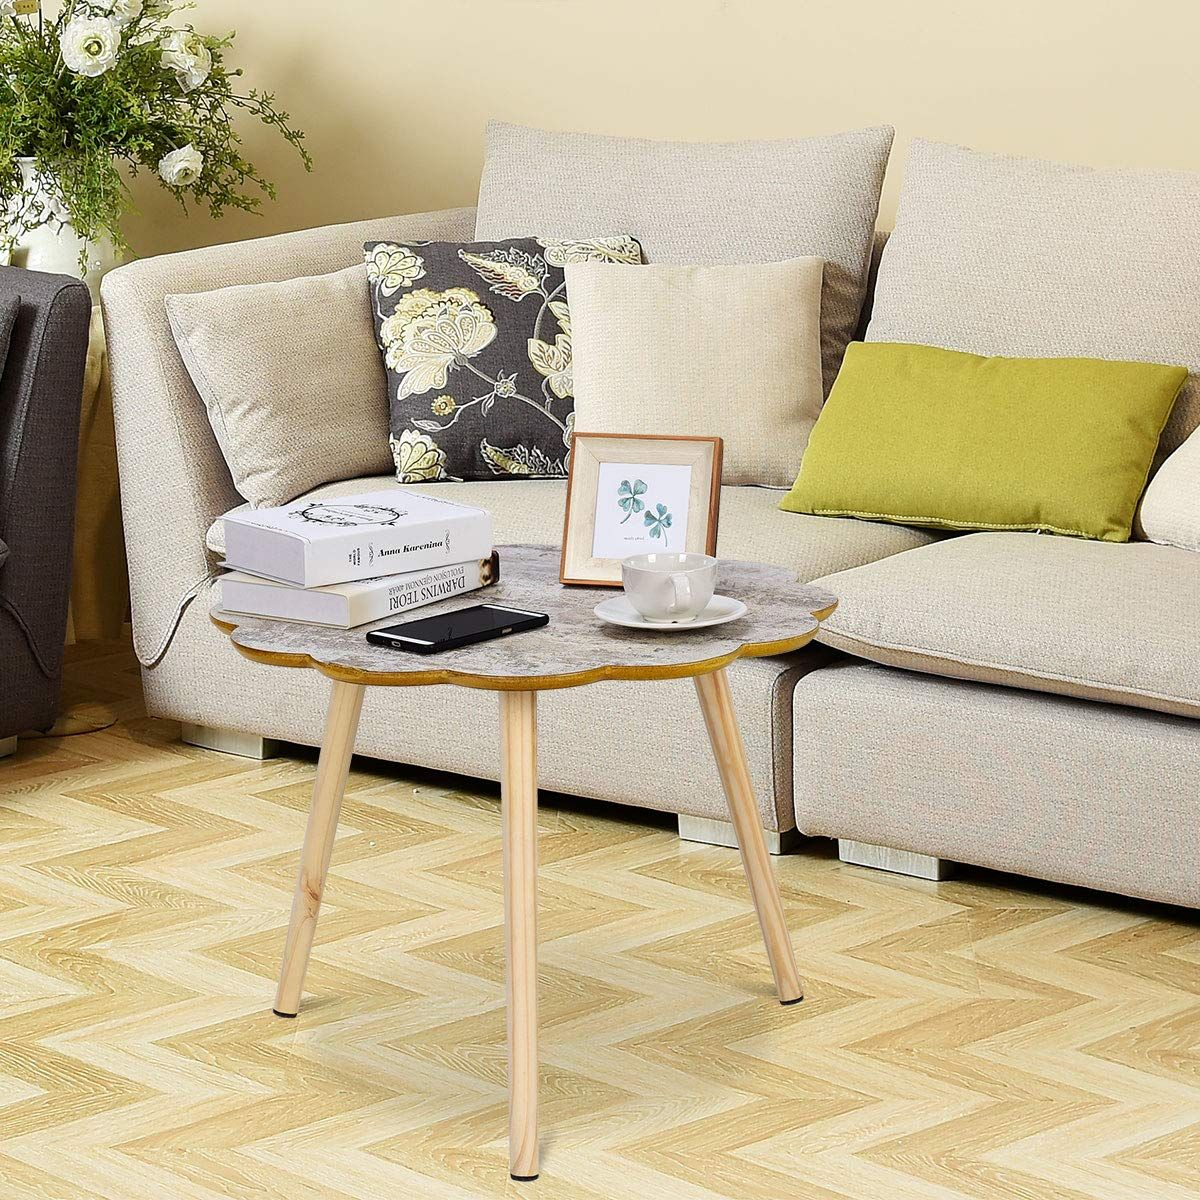 High Quality Mdf Tabletop Is Robust And Solid Wood Legs In Tripod Structure Keeps The Table Steady Providin Coffee Table Sofa Side Table Coffee Table Pictures